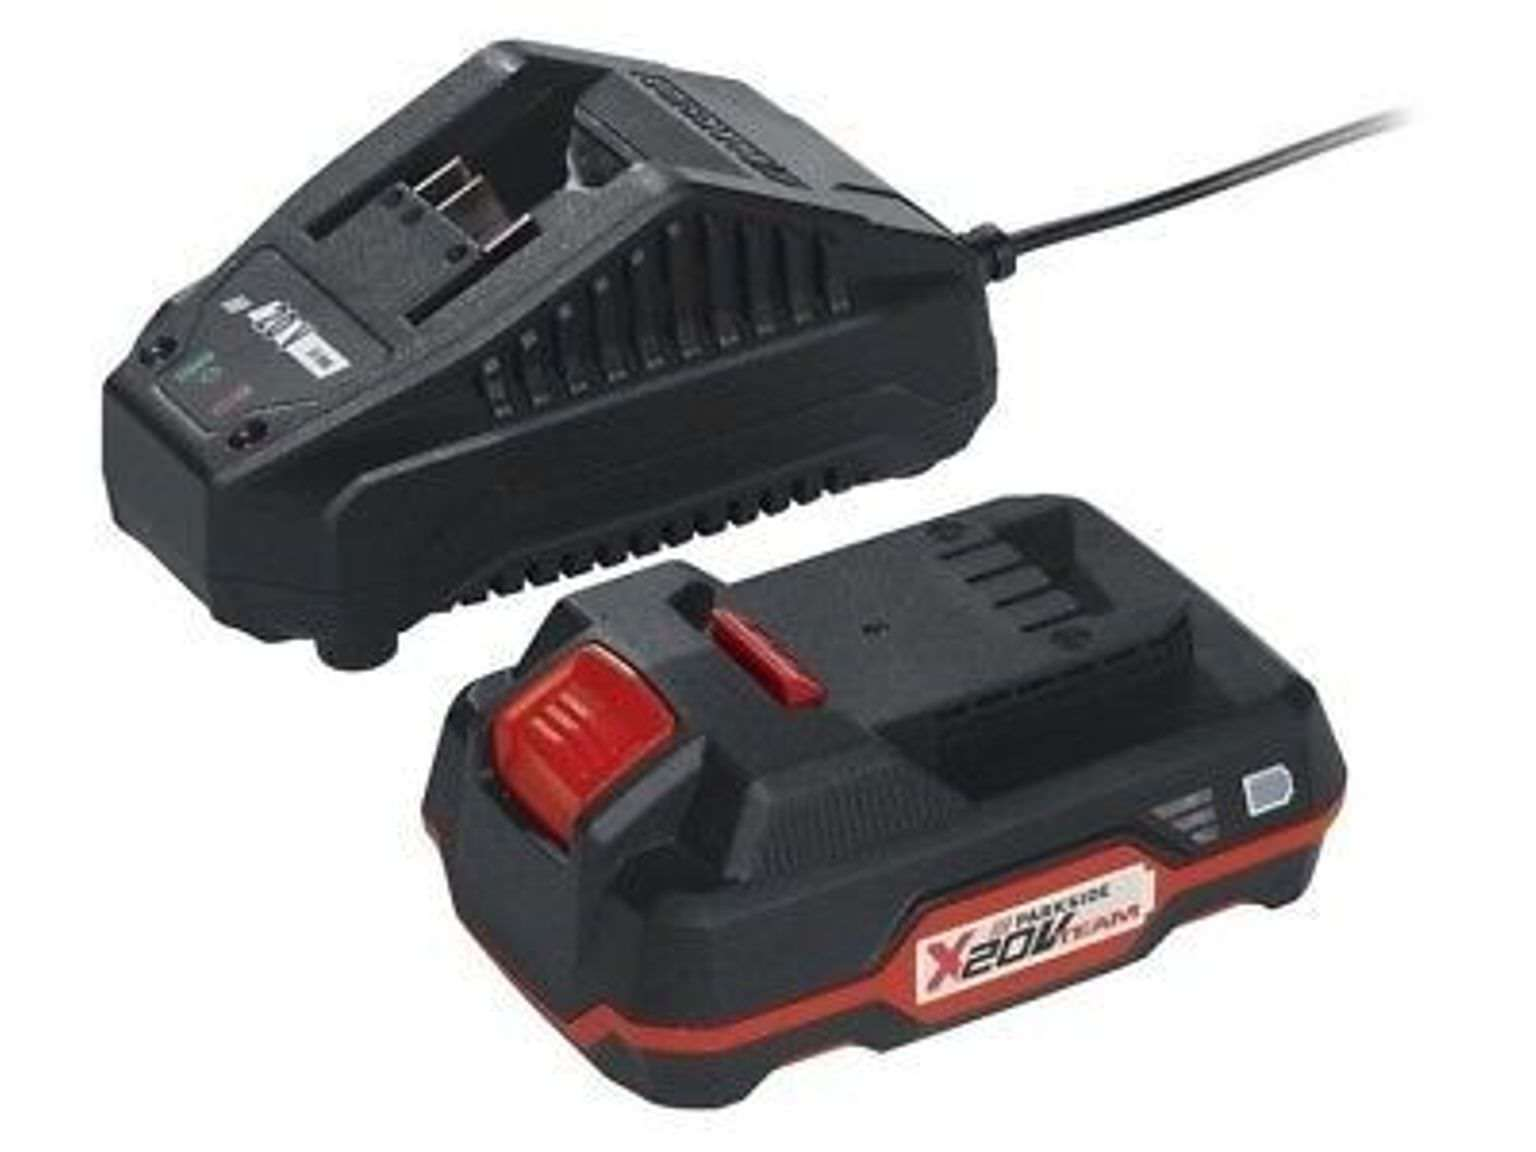 PARKSIDE Cordless 20v Battery PAP 20 A1 + Charger PLG 20 A1 X20v Compatible Tool